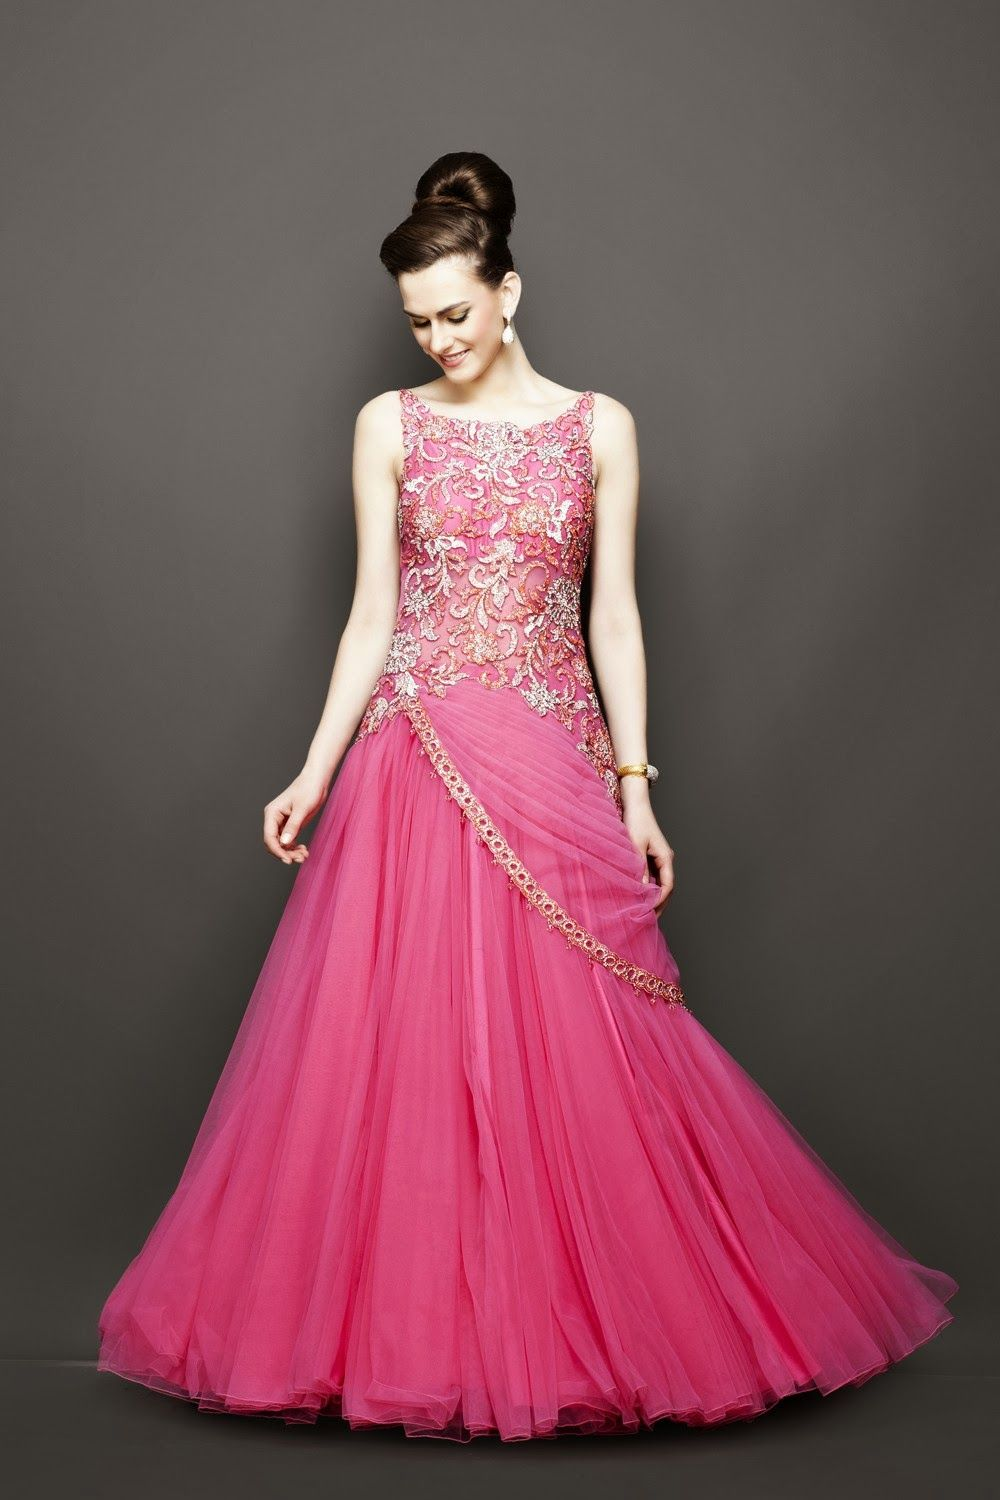 Evening dress for wedding in pink color dresses for How to dress for an evening wedding